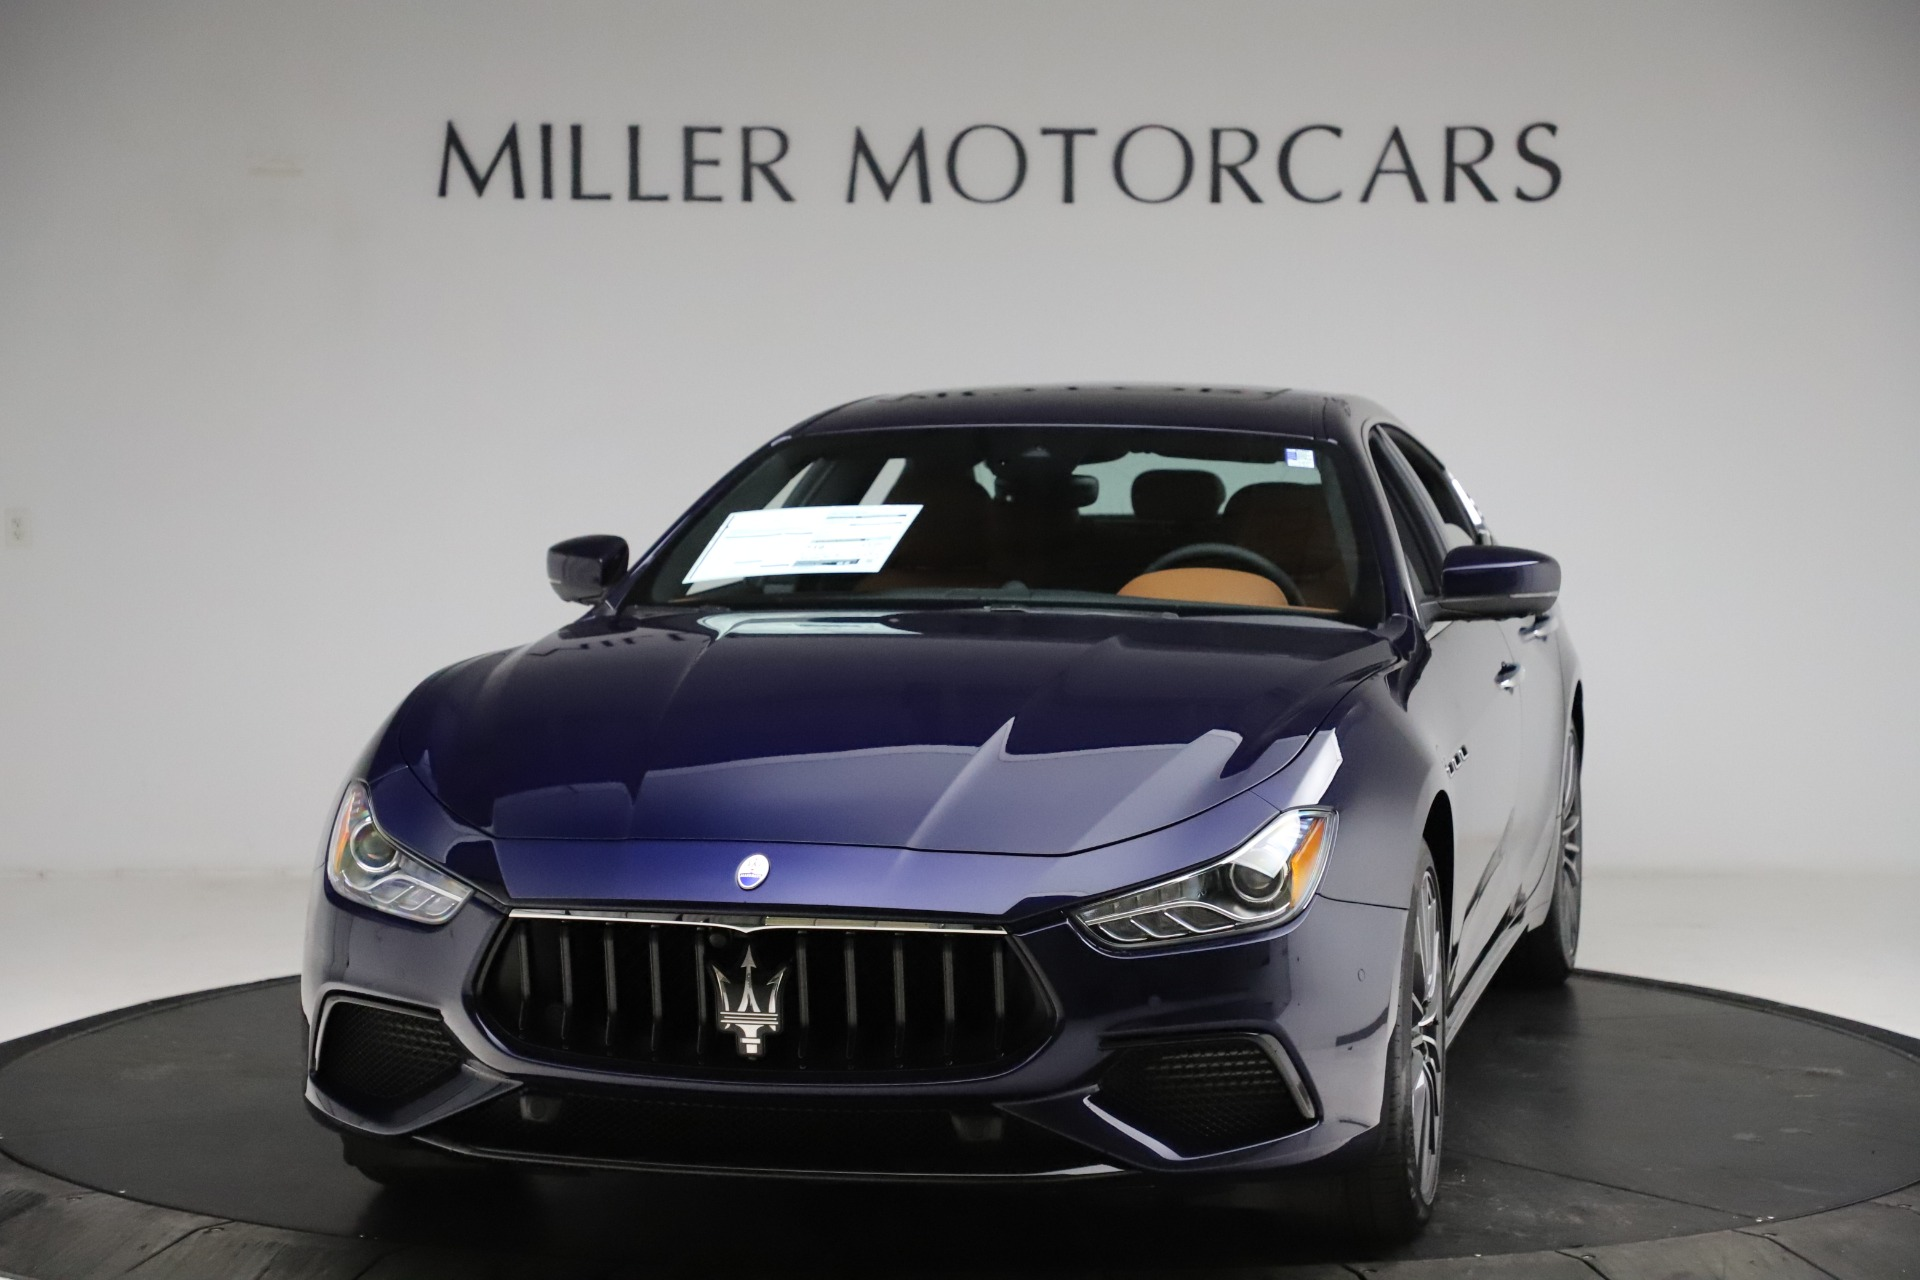 New 2021 Maserati Ghibli S Q4 for sale $90,925 at Bentley Greenwich in Greenwich CT 06830 1